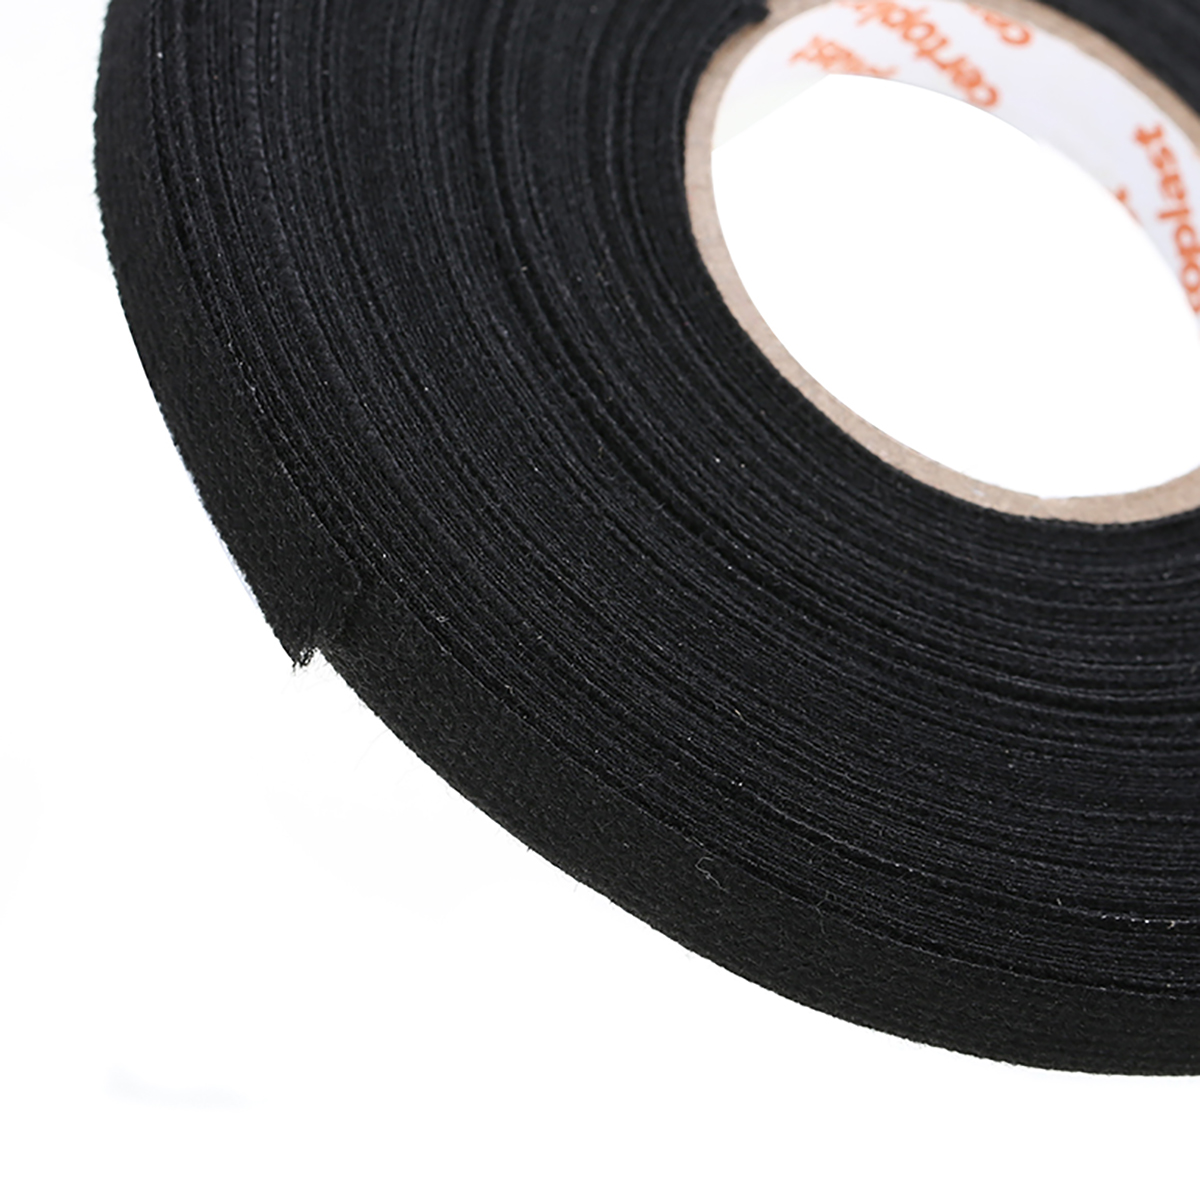 1pc Adhesive Cloth Fabric Tape Cable Black Looms Wiring Harness For Car 25m X 9mm 03mm In From Home Improvement On